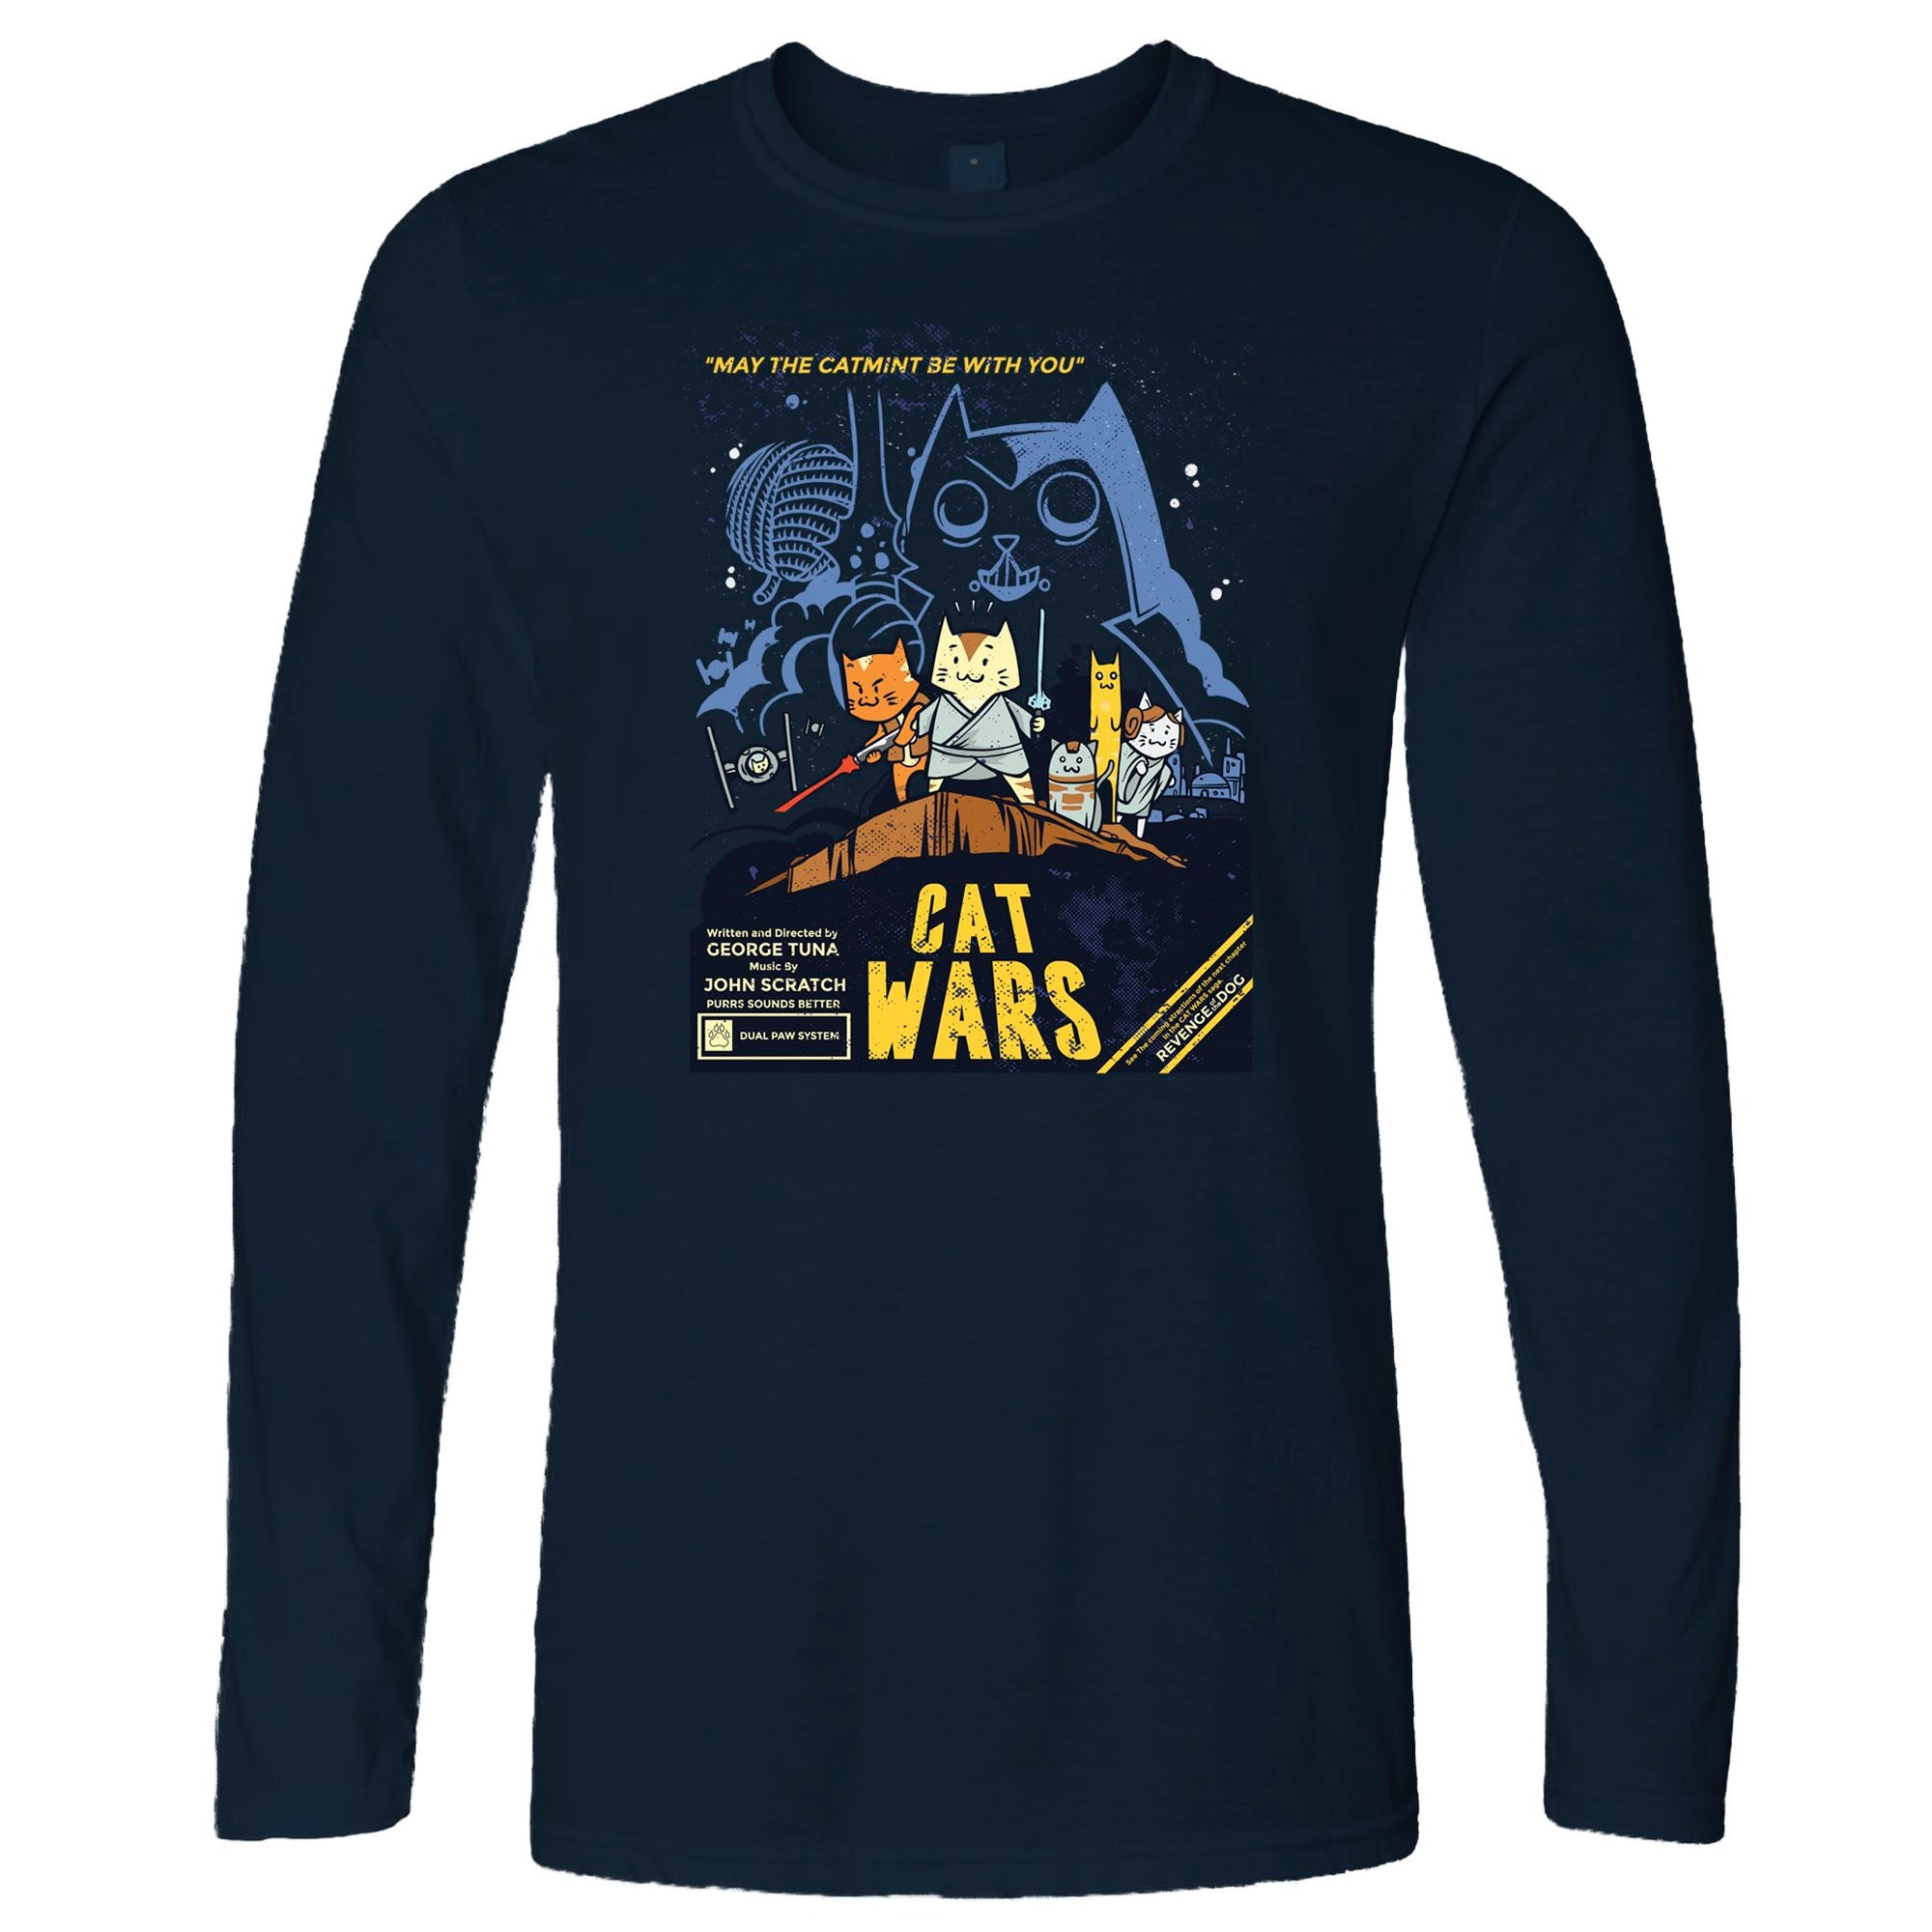 Cat Wars Long Sleeve Funny Star Parody T-Shirt